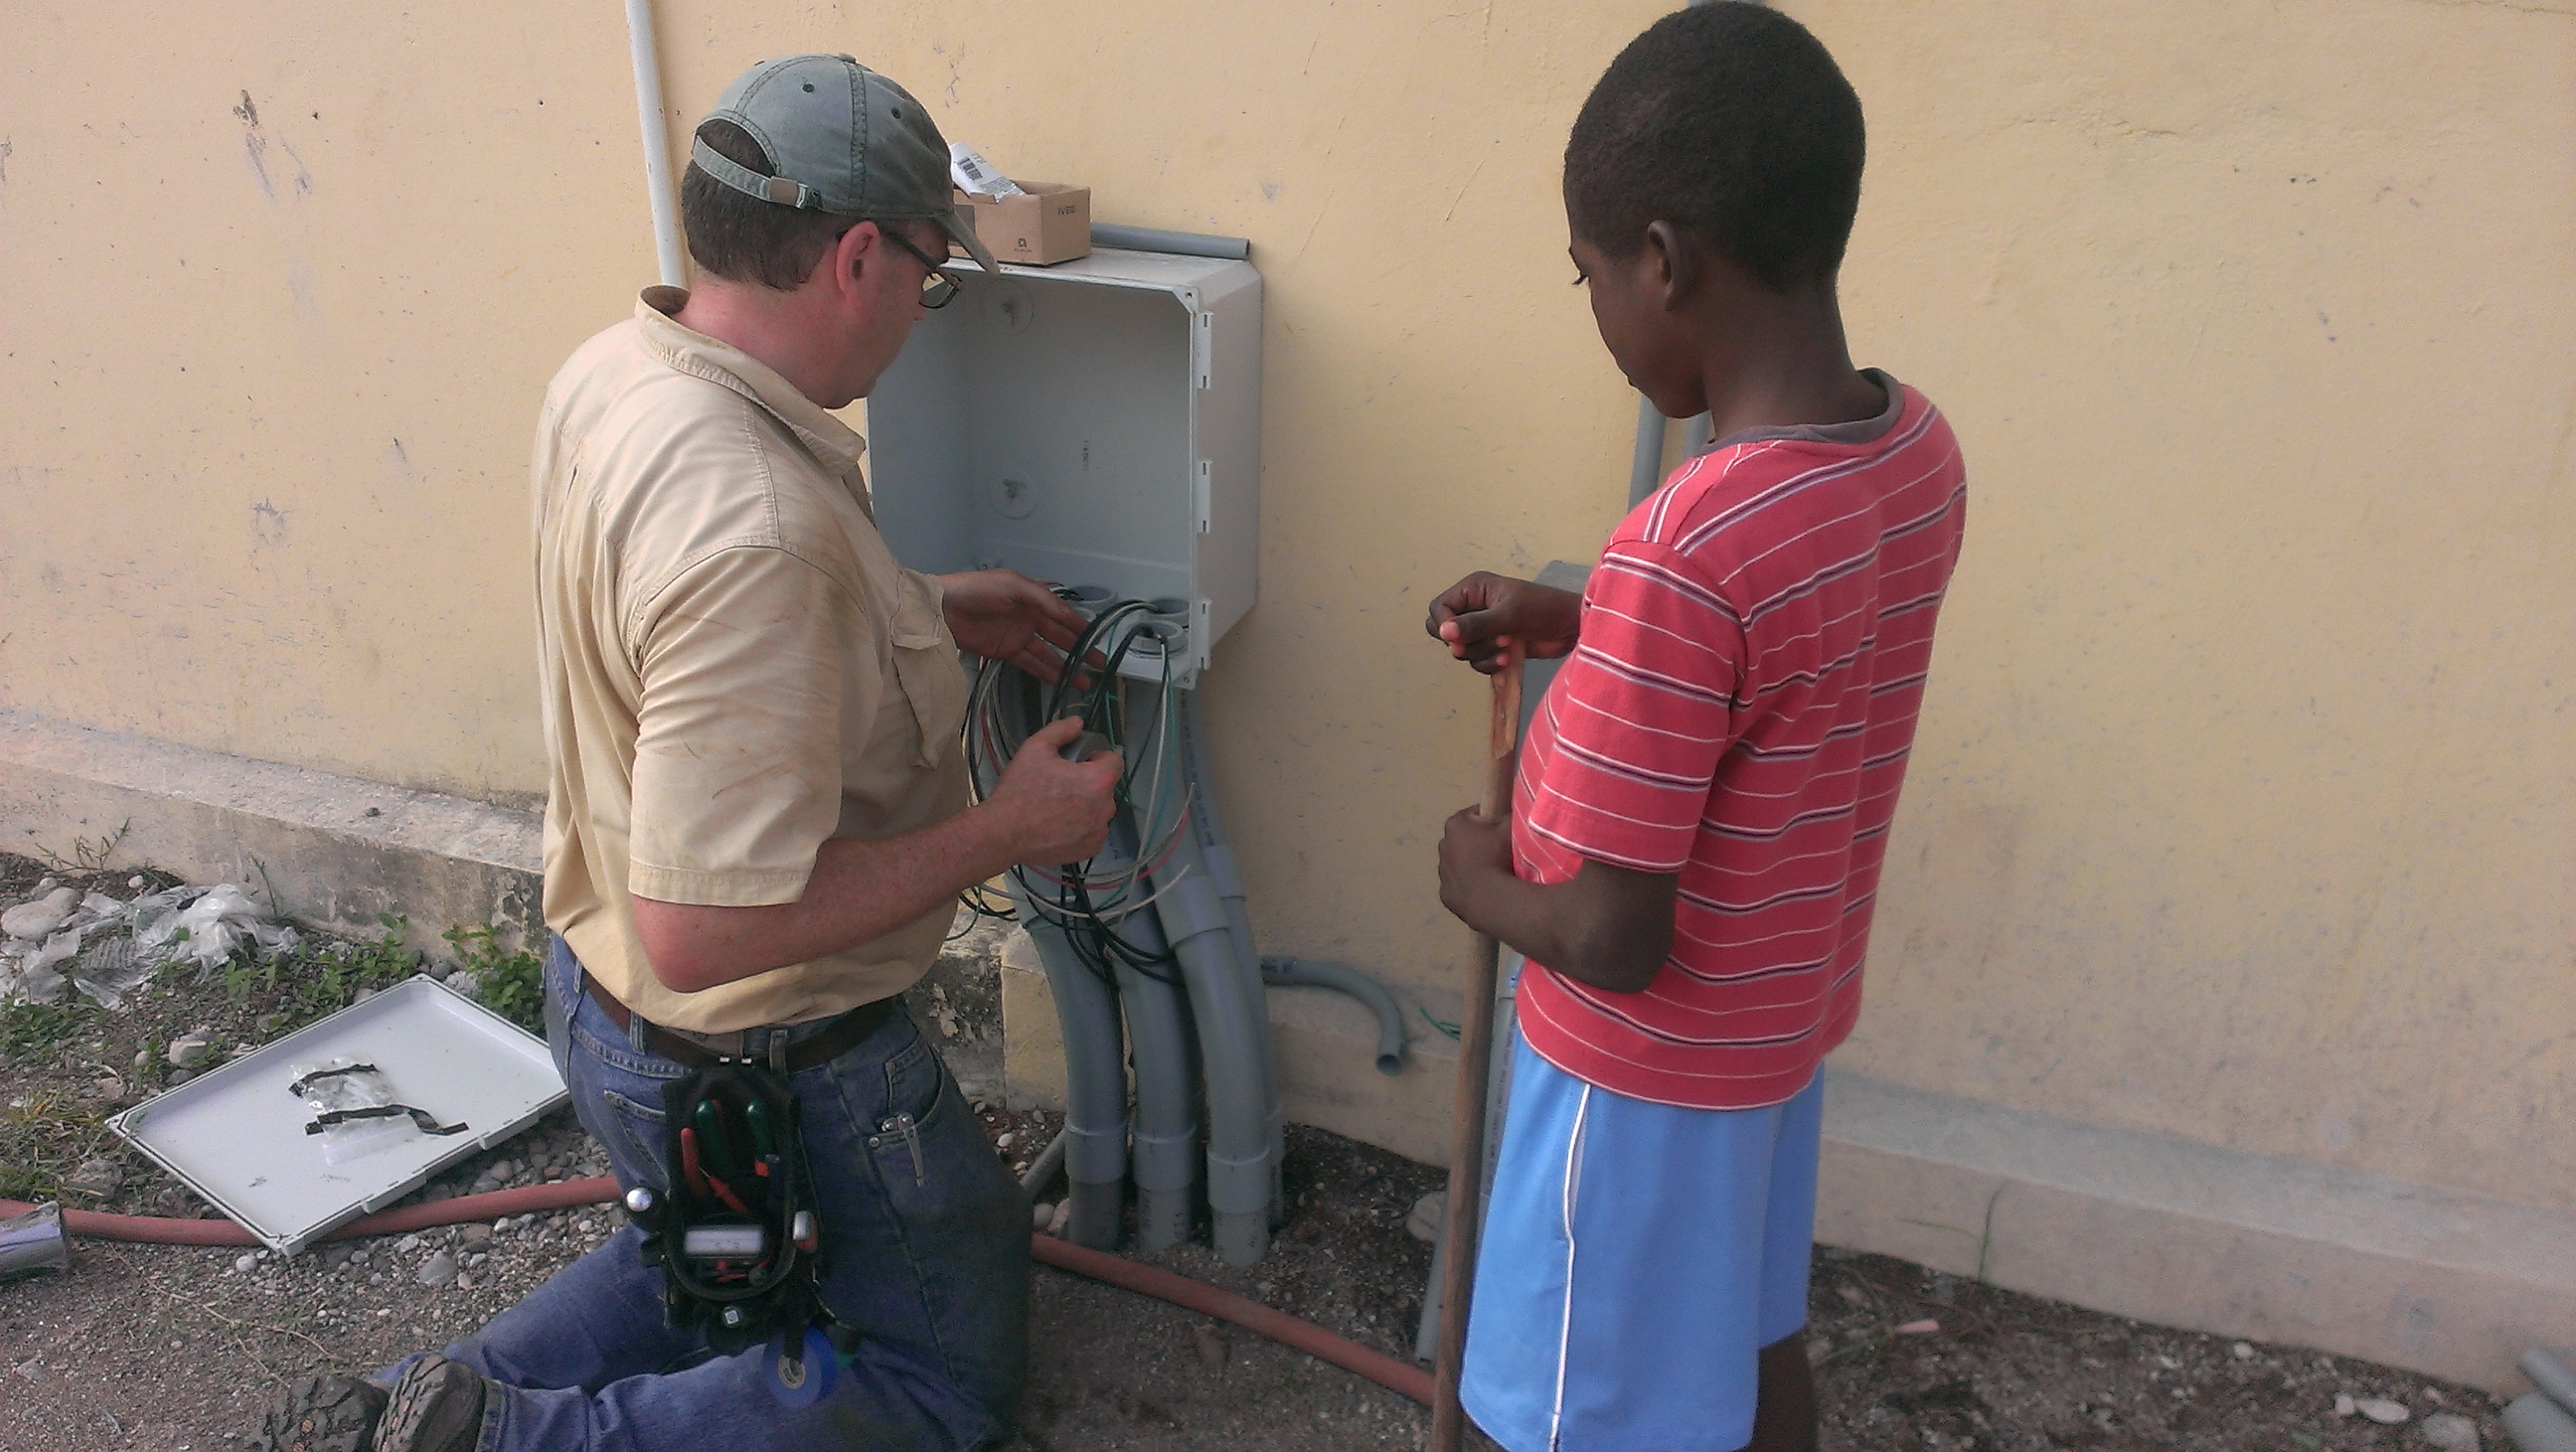 electrical wiring in haiti much more than electrical wiring - loving shepherd ministries electrical wiring in iraq